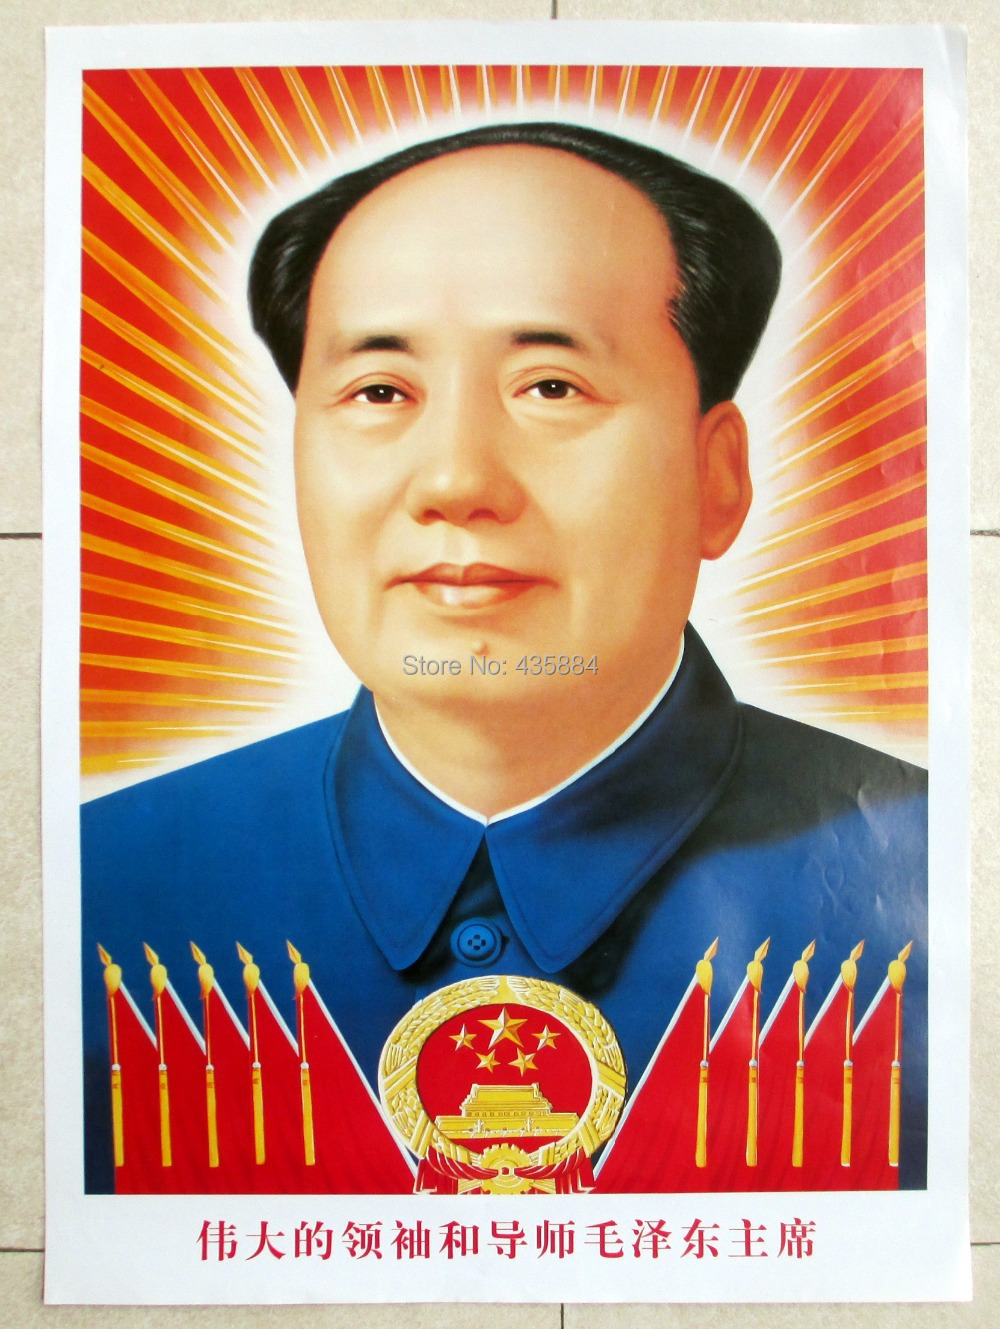 mao zedong paper 1 ib 2 consolidation and maintenance of power  this next sections  examines how mao zedong consolidated power in the years 1949-1954 and how .